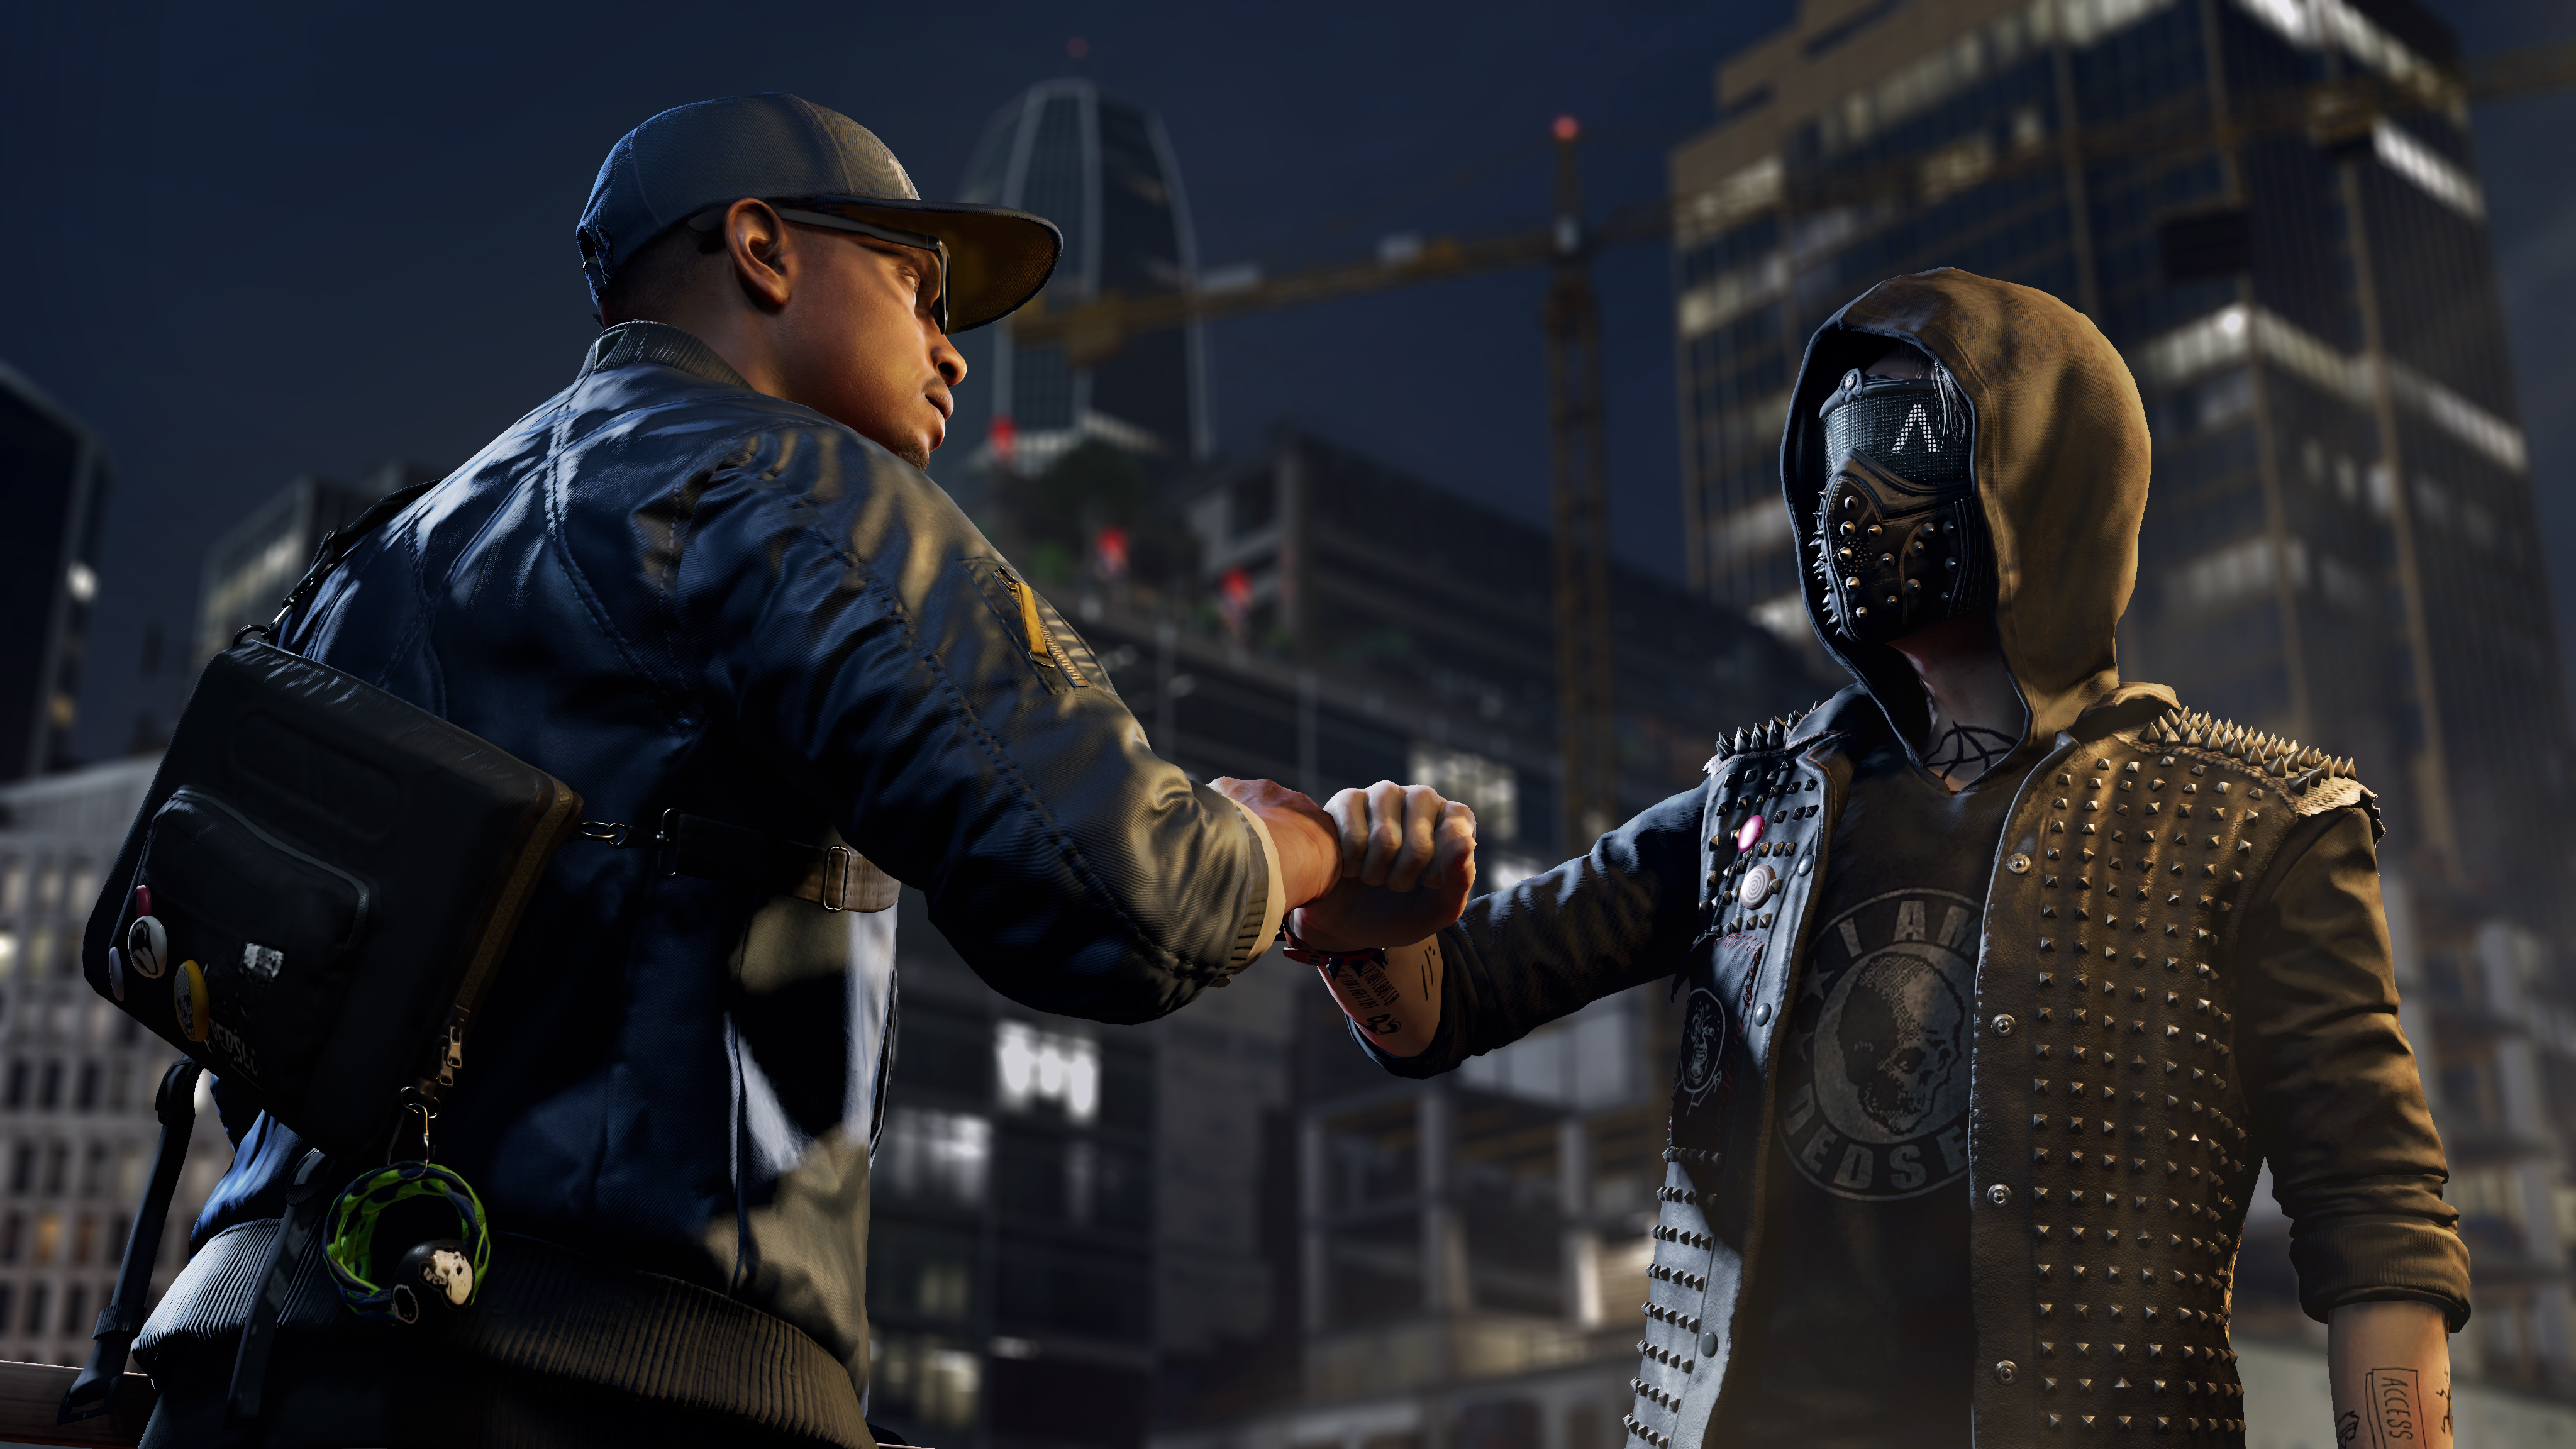 The world of watch dogs 2 explored in 20 minutes